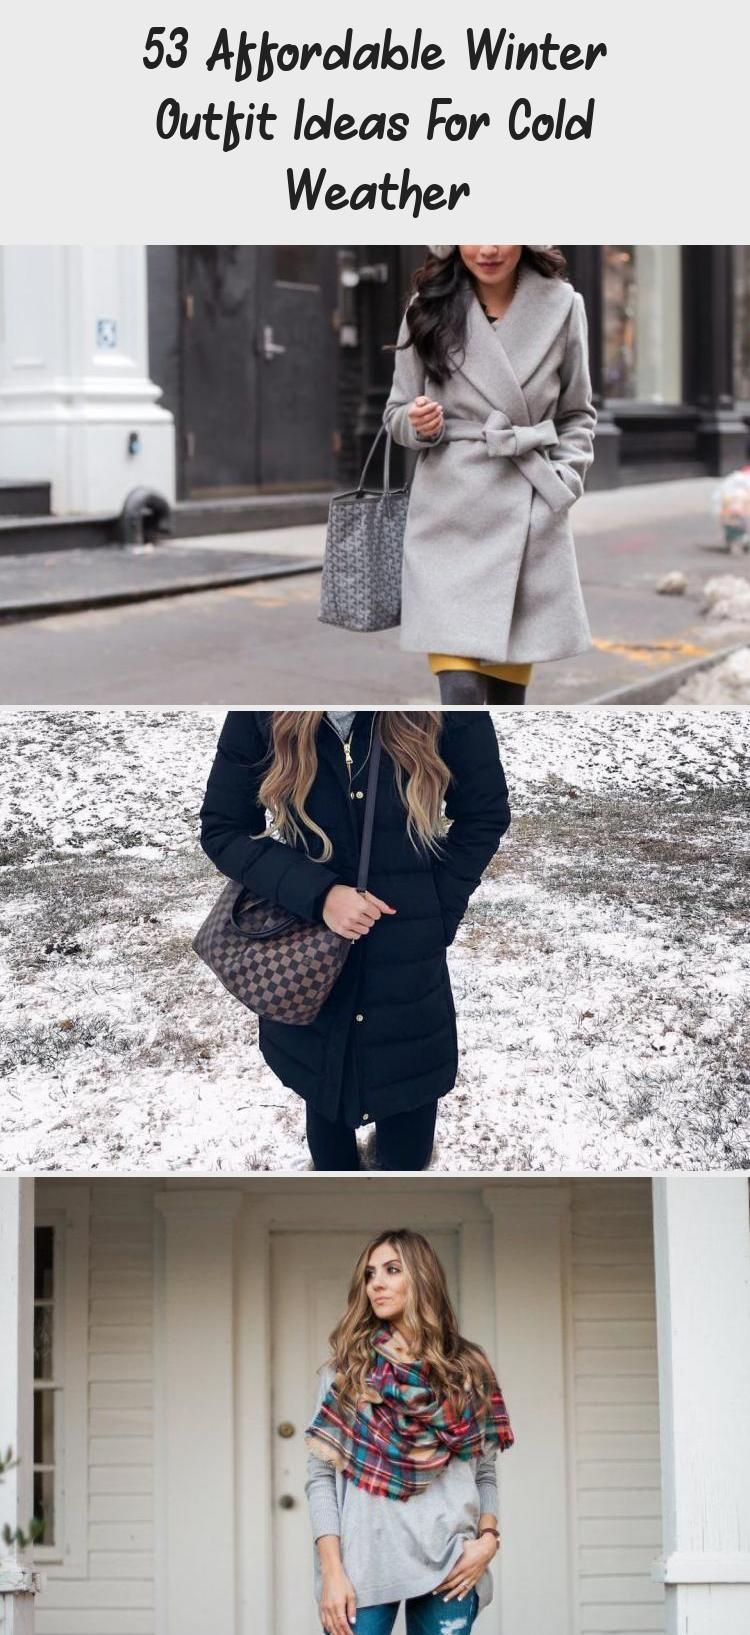 53 Affordable Winter Outfit Ideas For Cold Weather - OUTFIT - Pressure cooker recipes - Casey...